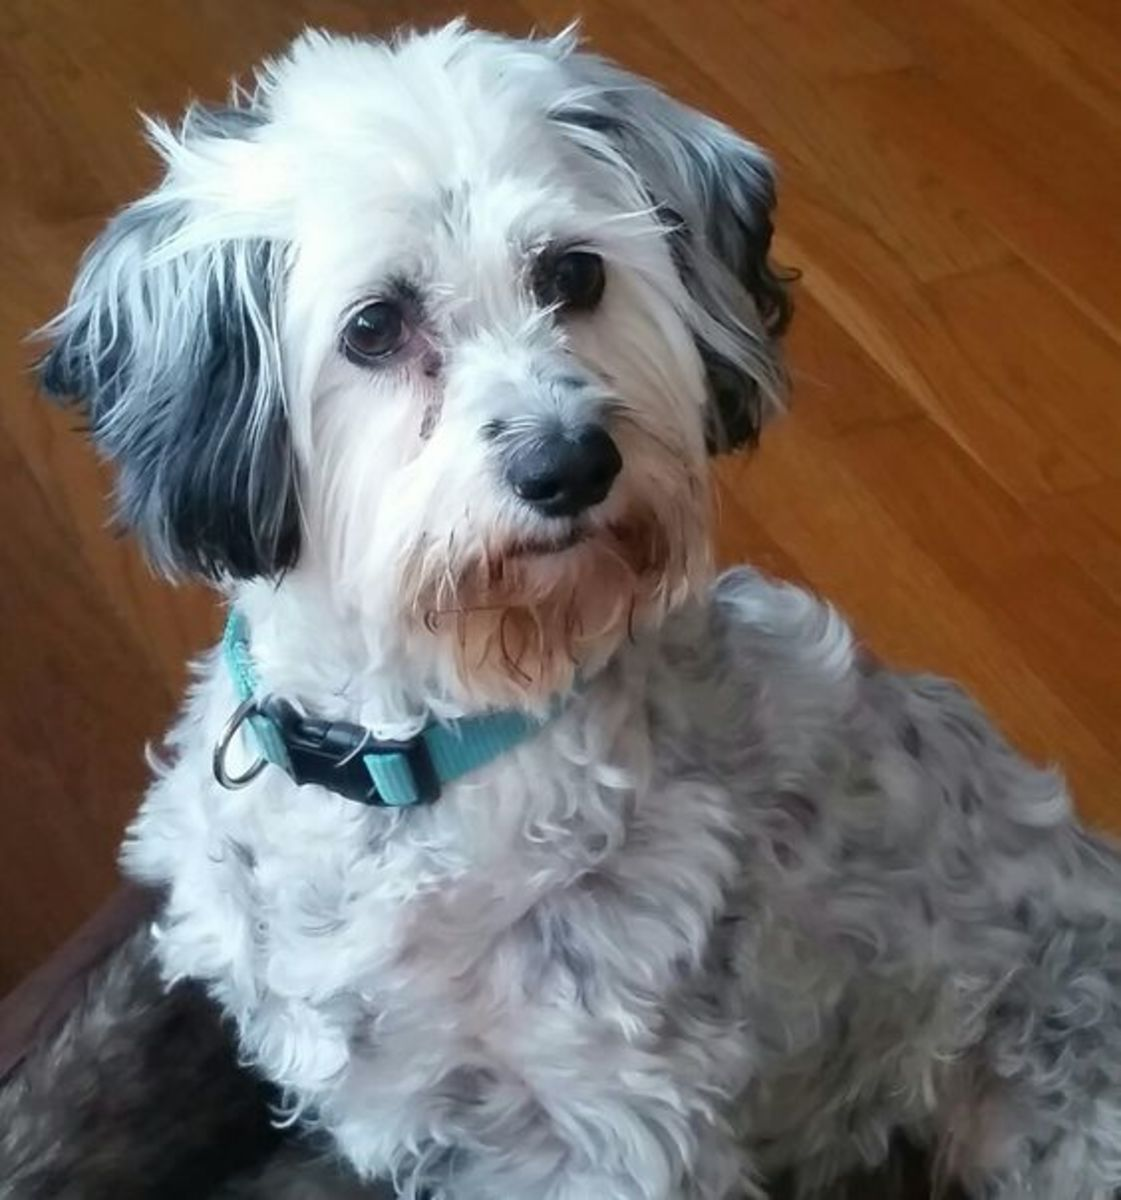 This is my cockapoo, Tucker, who is almost 11 years old in this picture. He turned 15 on January 24, 2021.